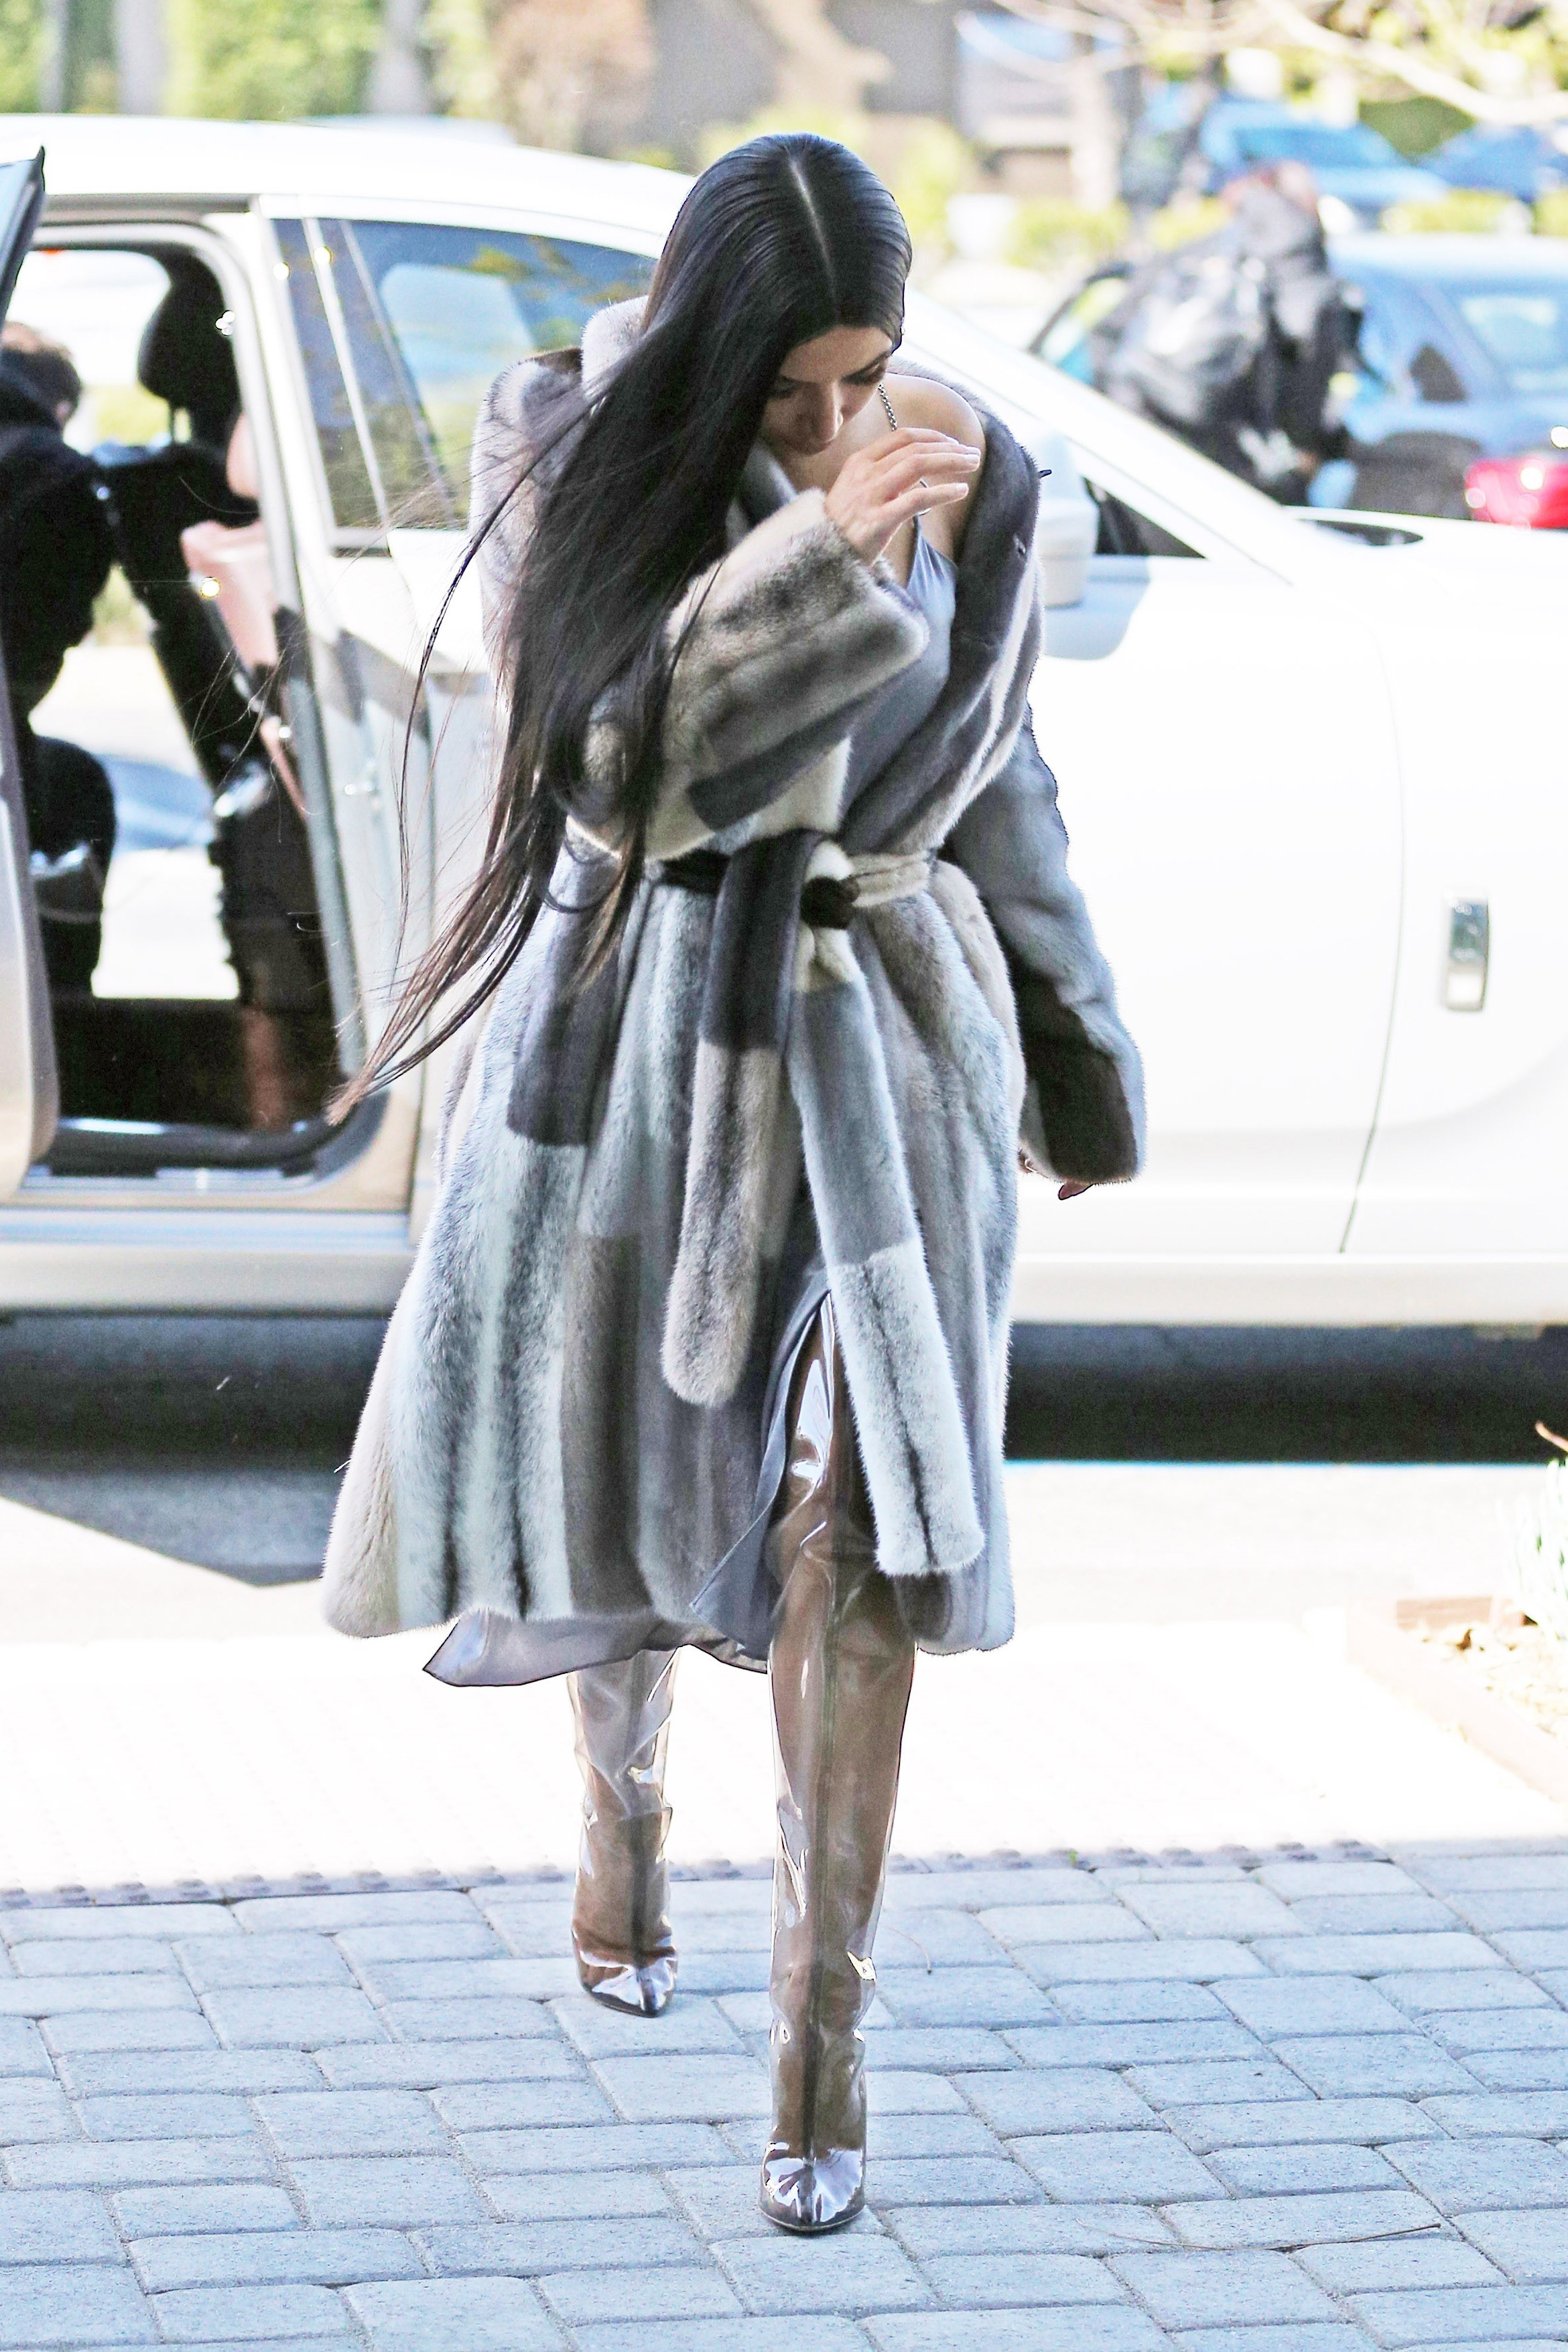 Kim Kardashian Wears Fur In 80 Degree Weather